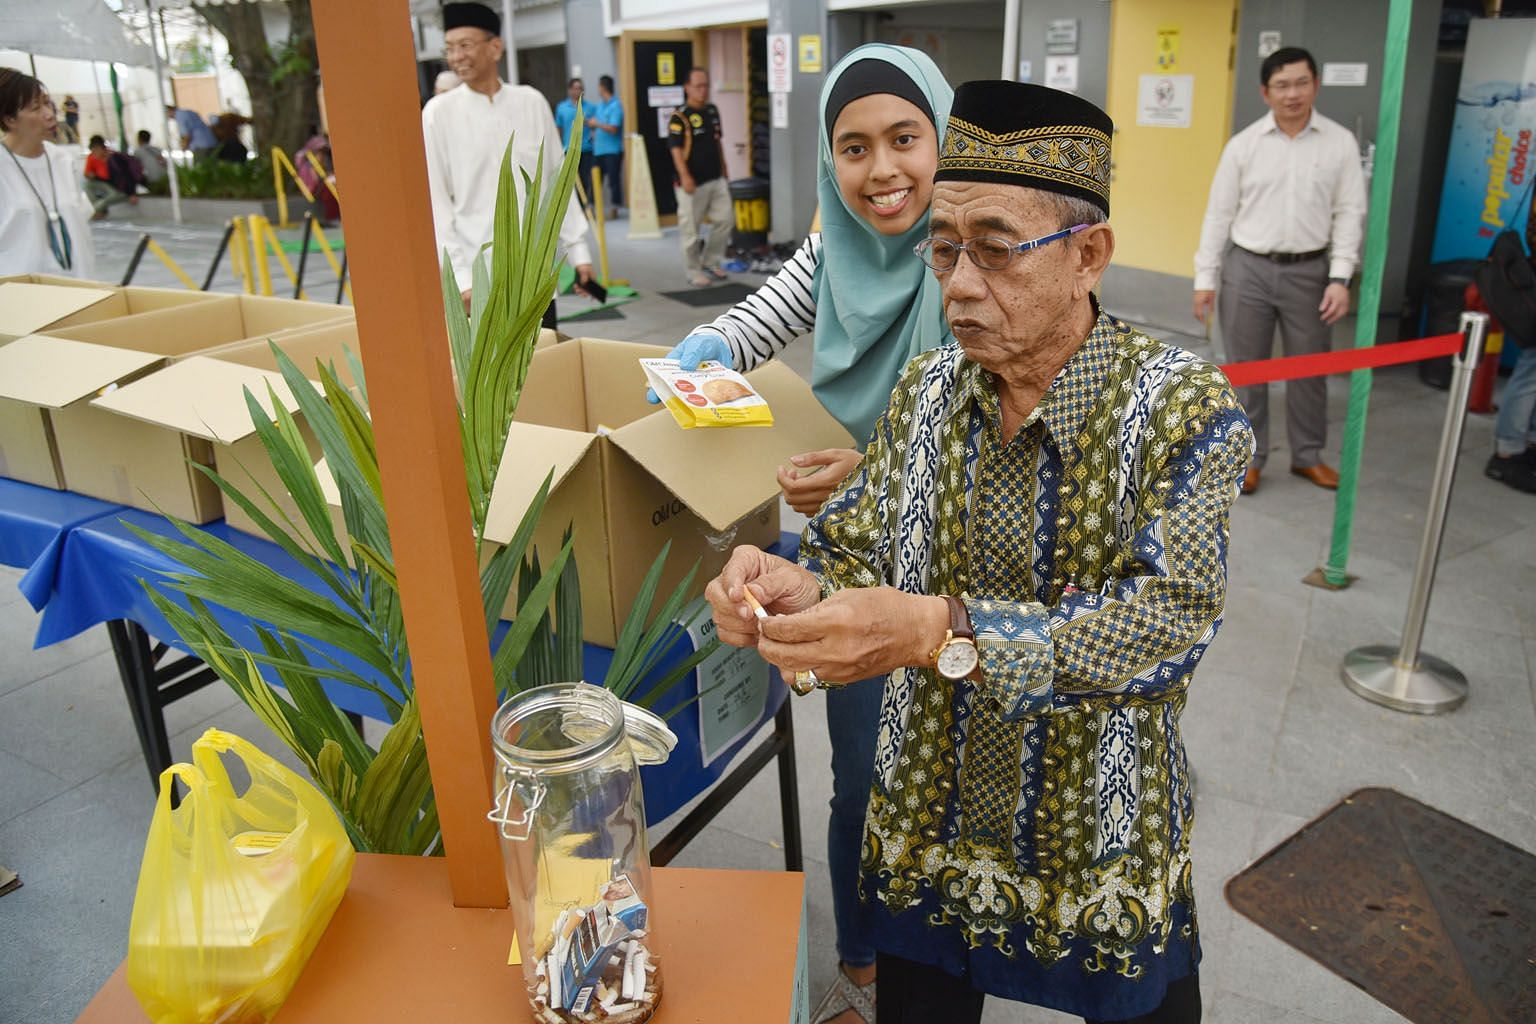 Mr Wahab Mohamed, 77, giving up his cigarette in exchange for a curry puff at Sultan Mosque yesterday. Until mid-October, smokers who visit Puff For A Puff booths at 22 partner mosques can trade cigarettes for free curry puffs, before choosing to joi